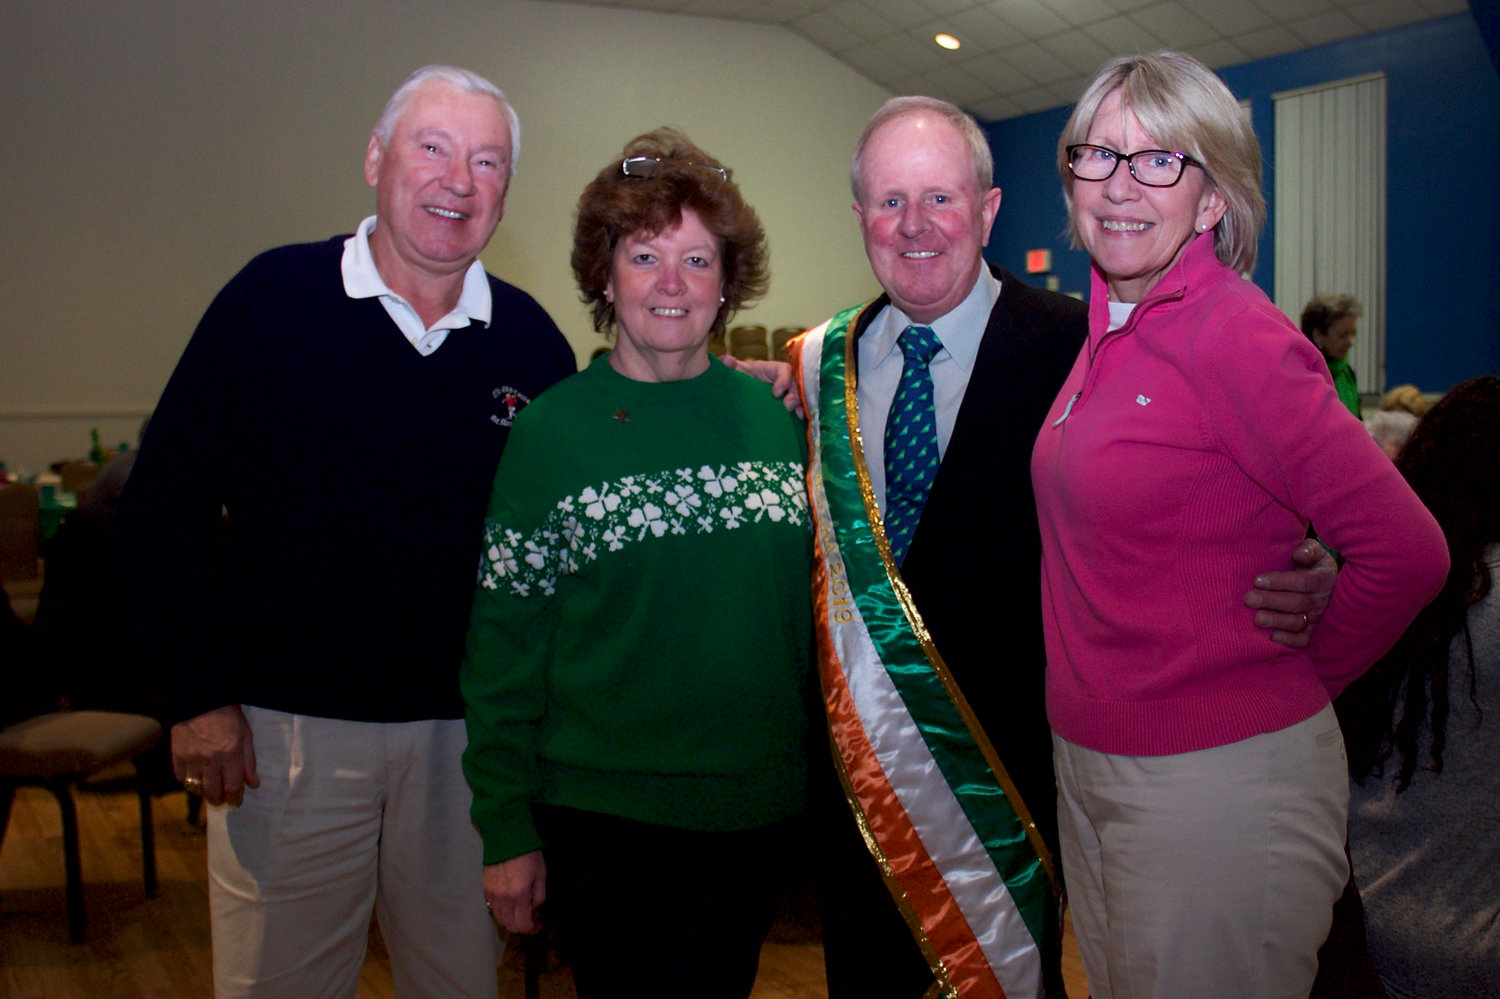 Newly named grand Marshal Patsy Furlong, in sash, celebrated with his wife, Nancy, and their cousins Alex and Brenda Rizea.